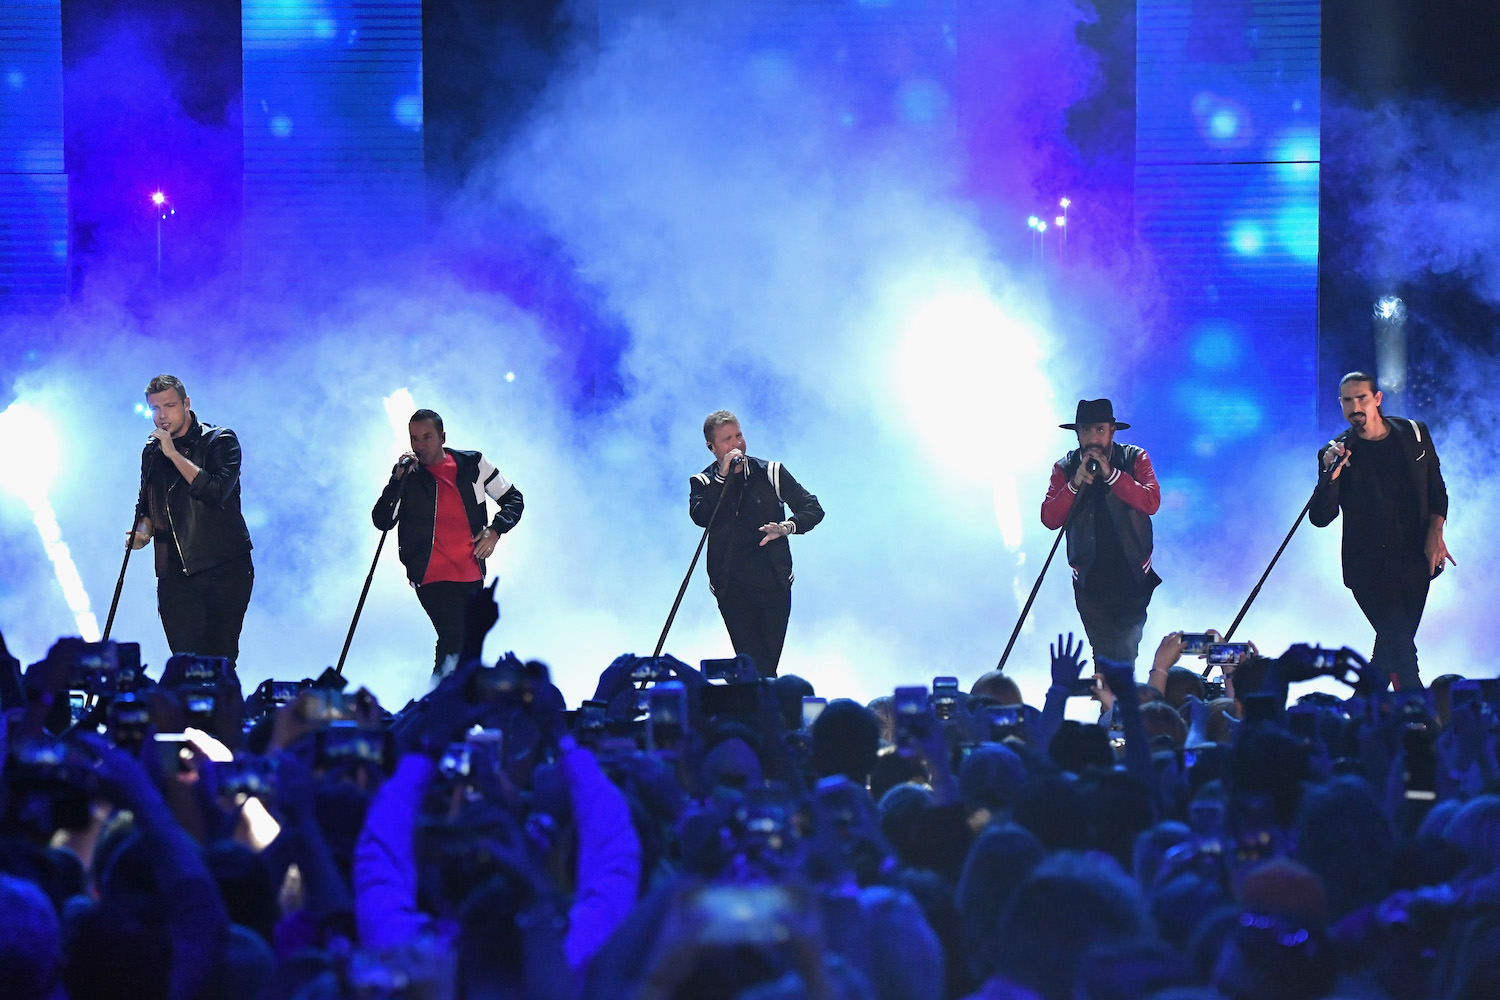 BACKSTREET BOYS - CMT MUSIC AWARDS